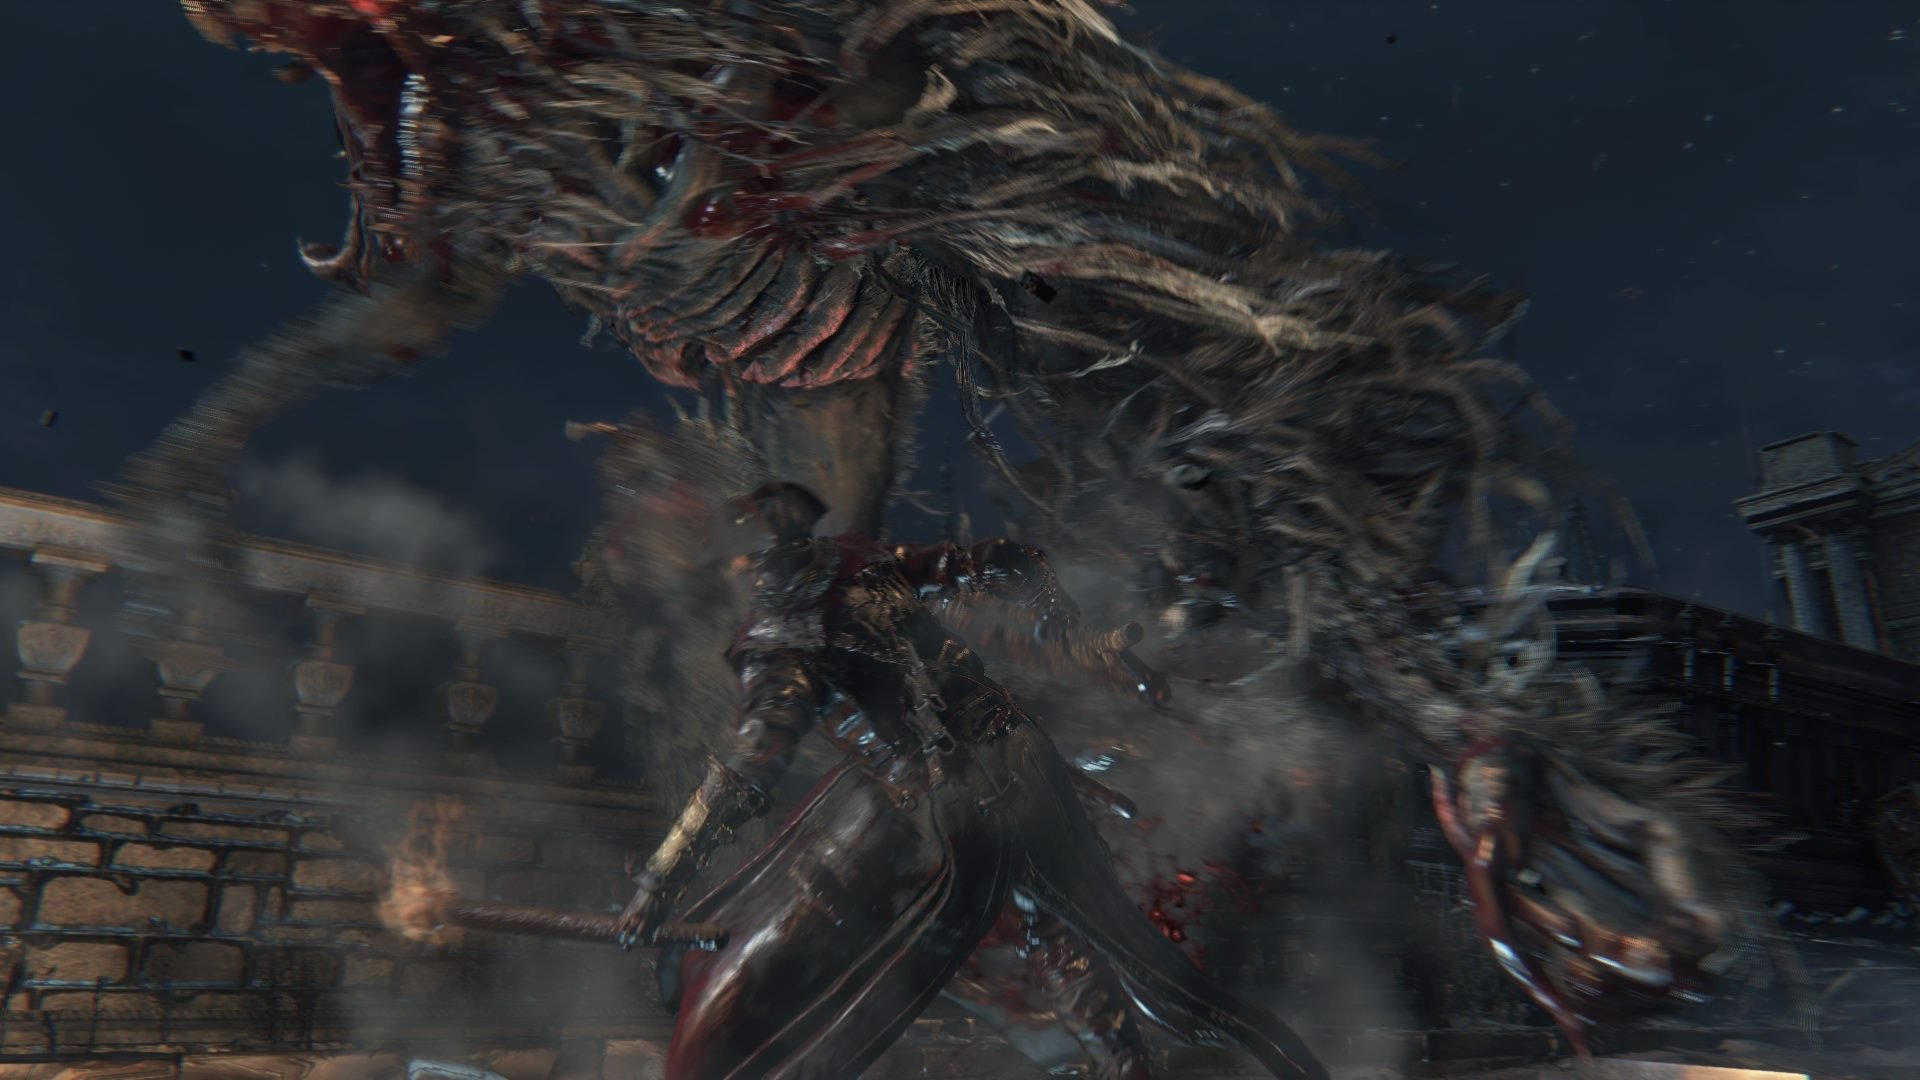 Bloodborne Gets Some Impressive Gameplay Videos Showing the Cleric ...